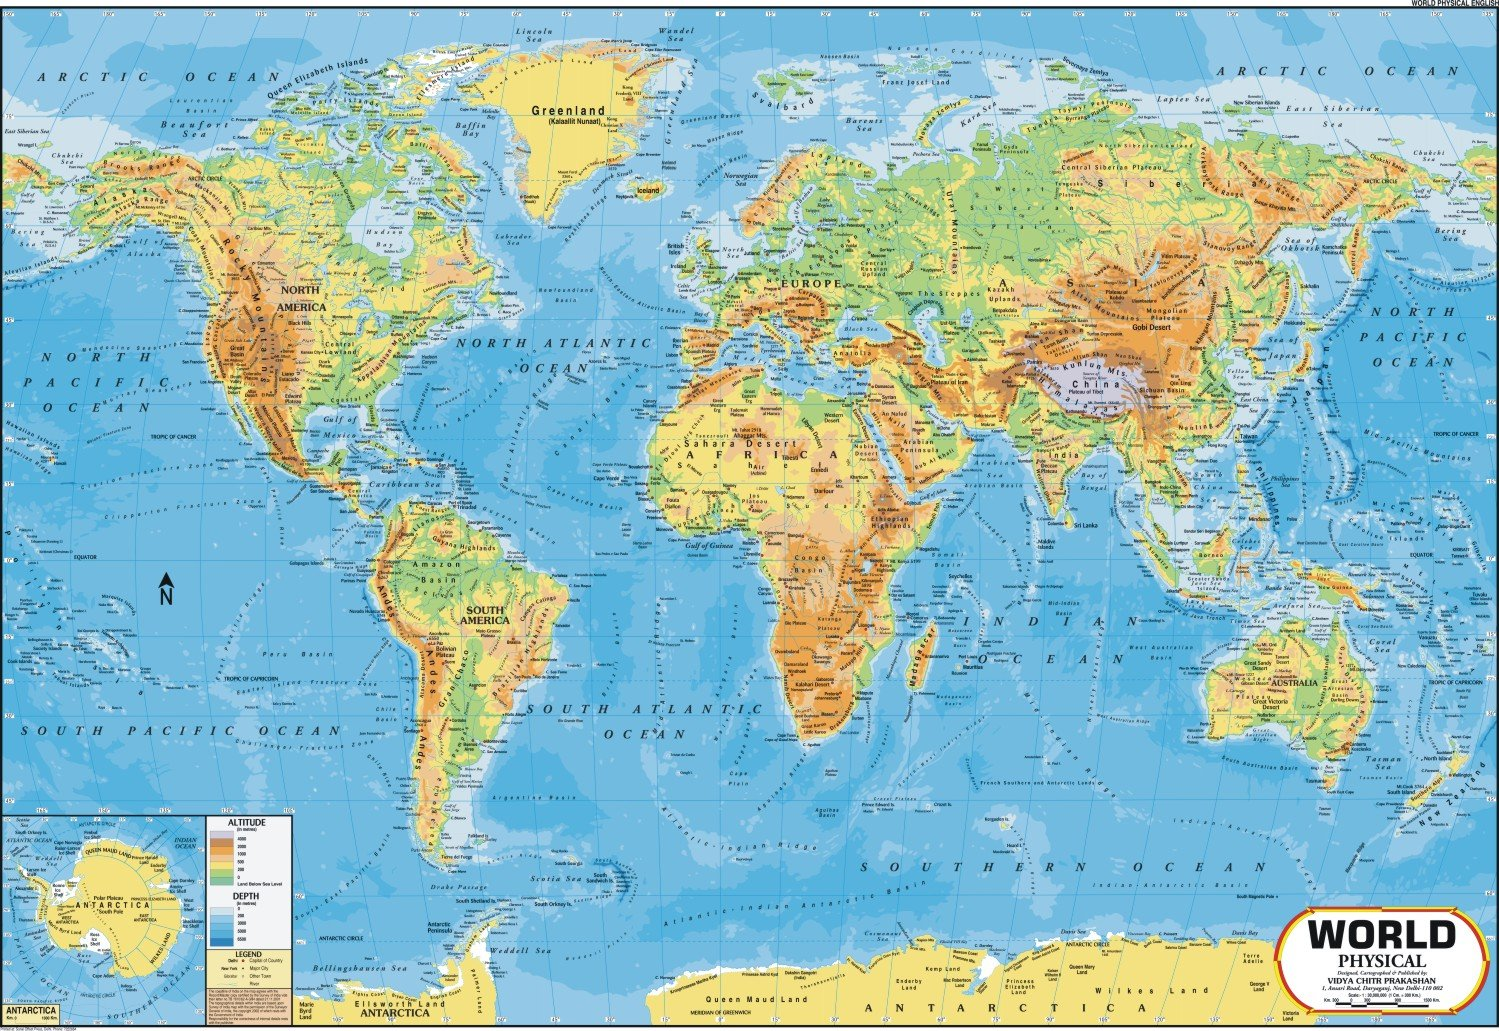 The physical map of the world